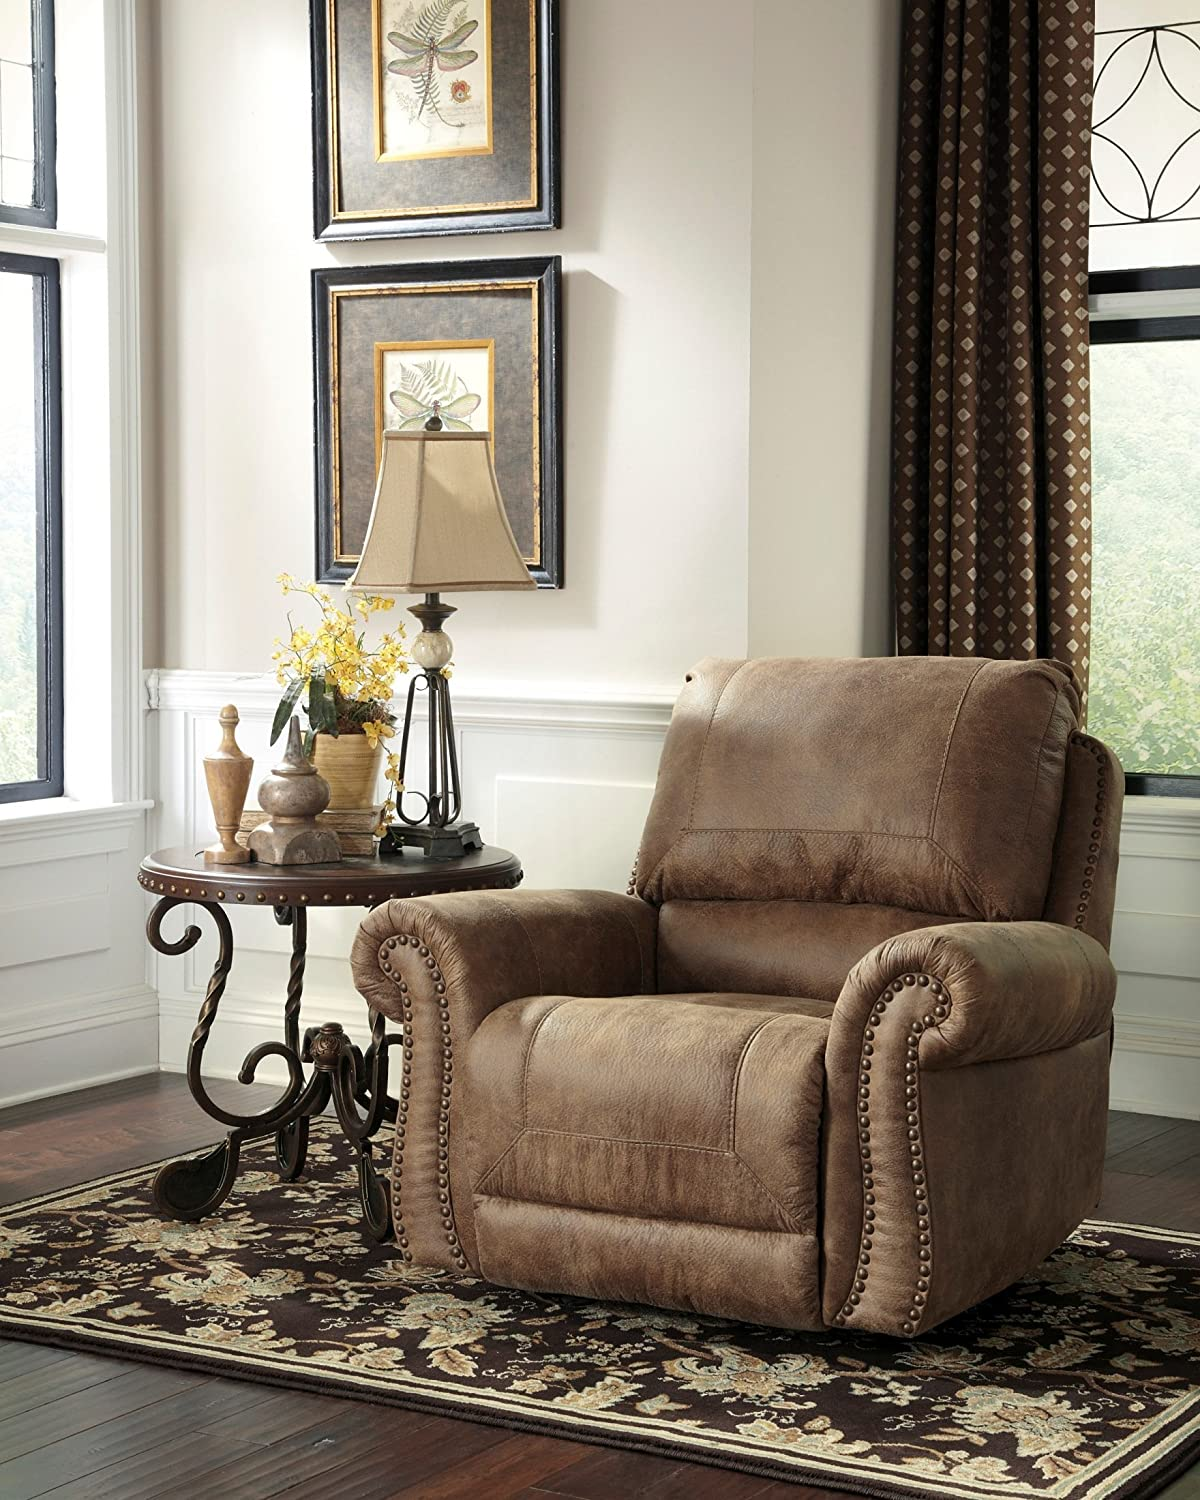 Ashley 3190125 Larkinhurst Earth Rocker - Amazon.com: Ashley Or Broyhill - Chairs / Living Room Furniture